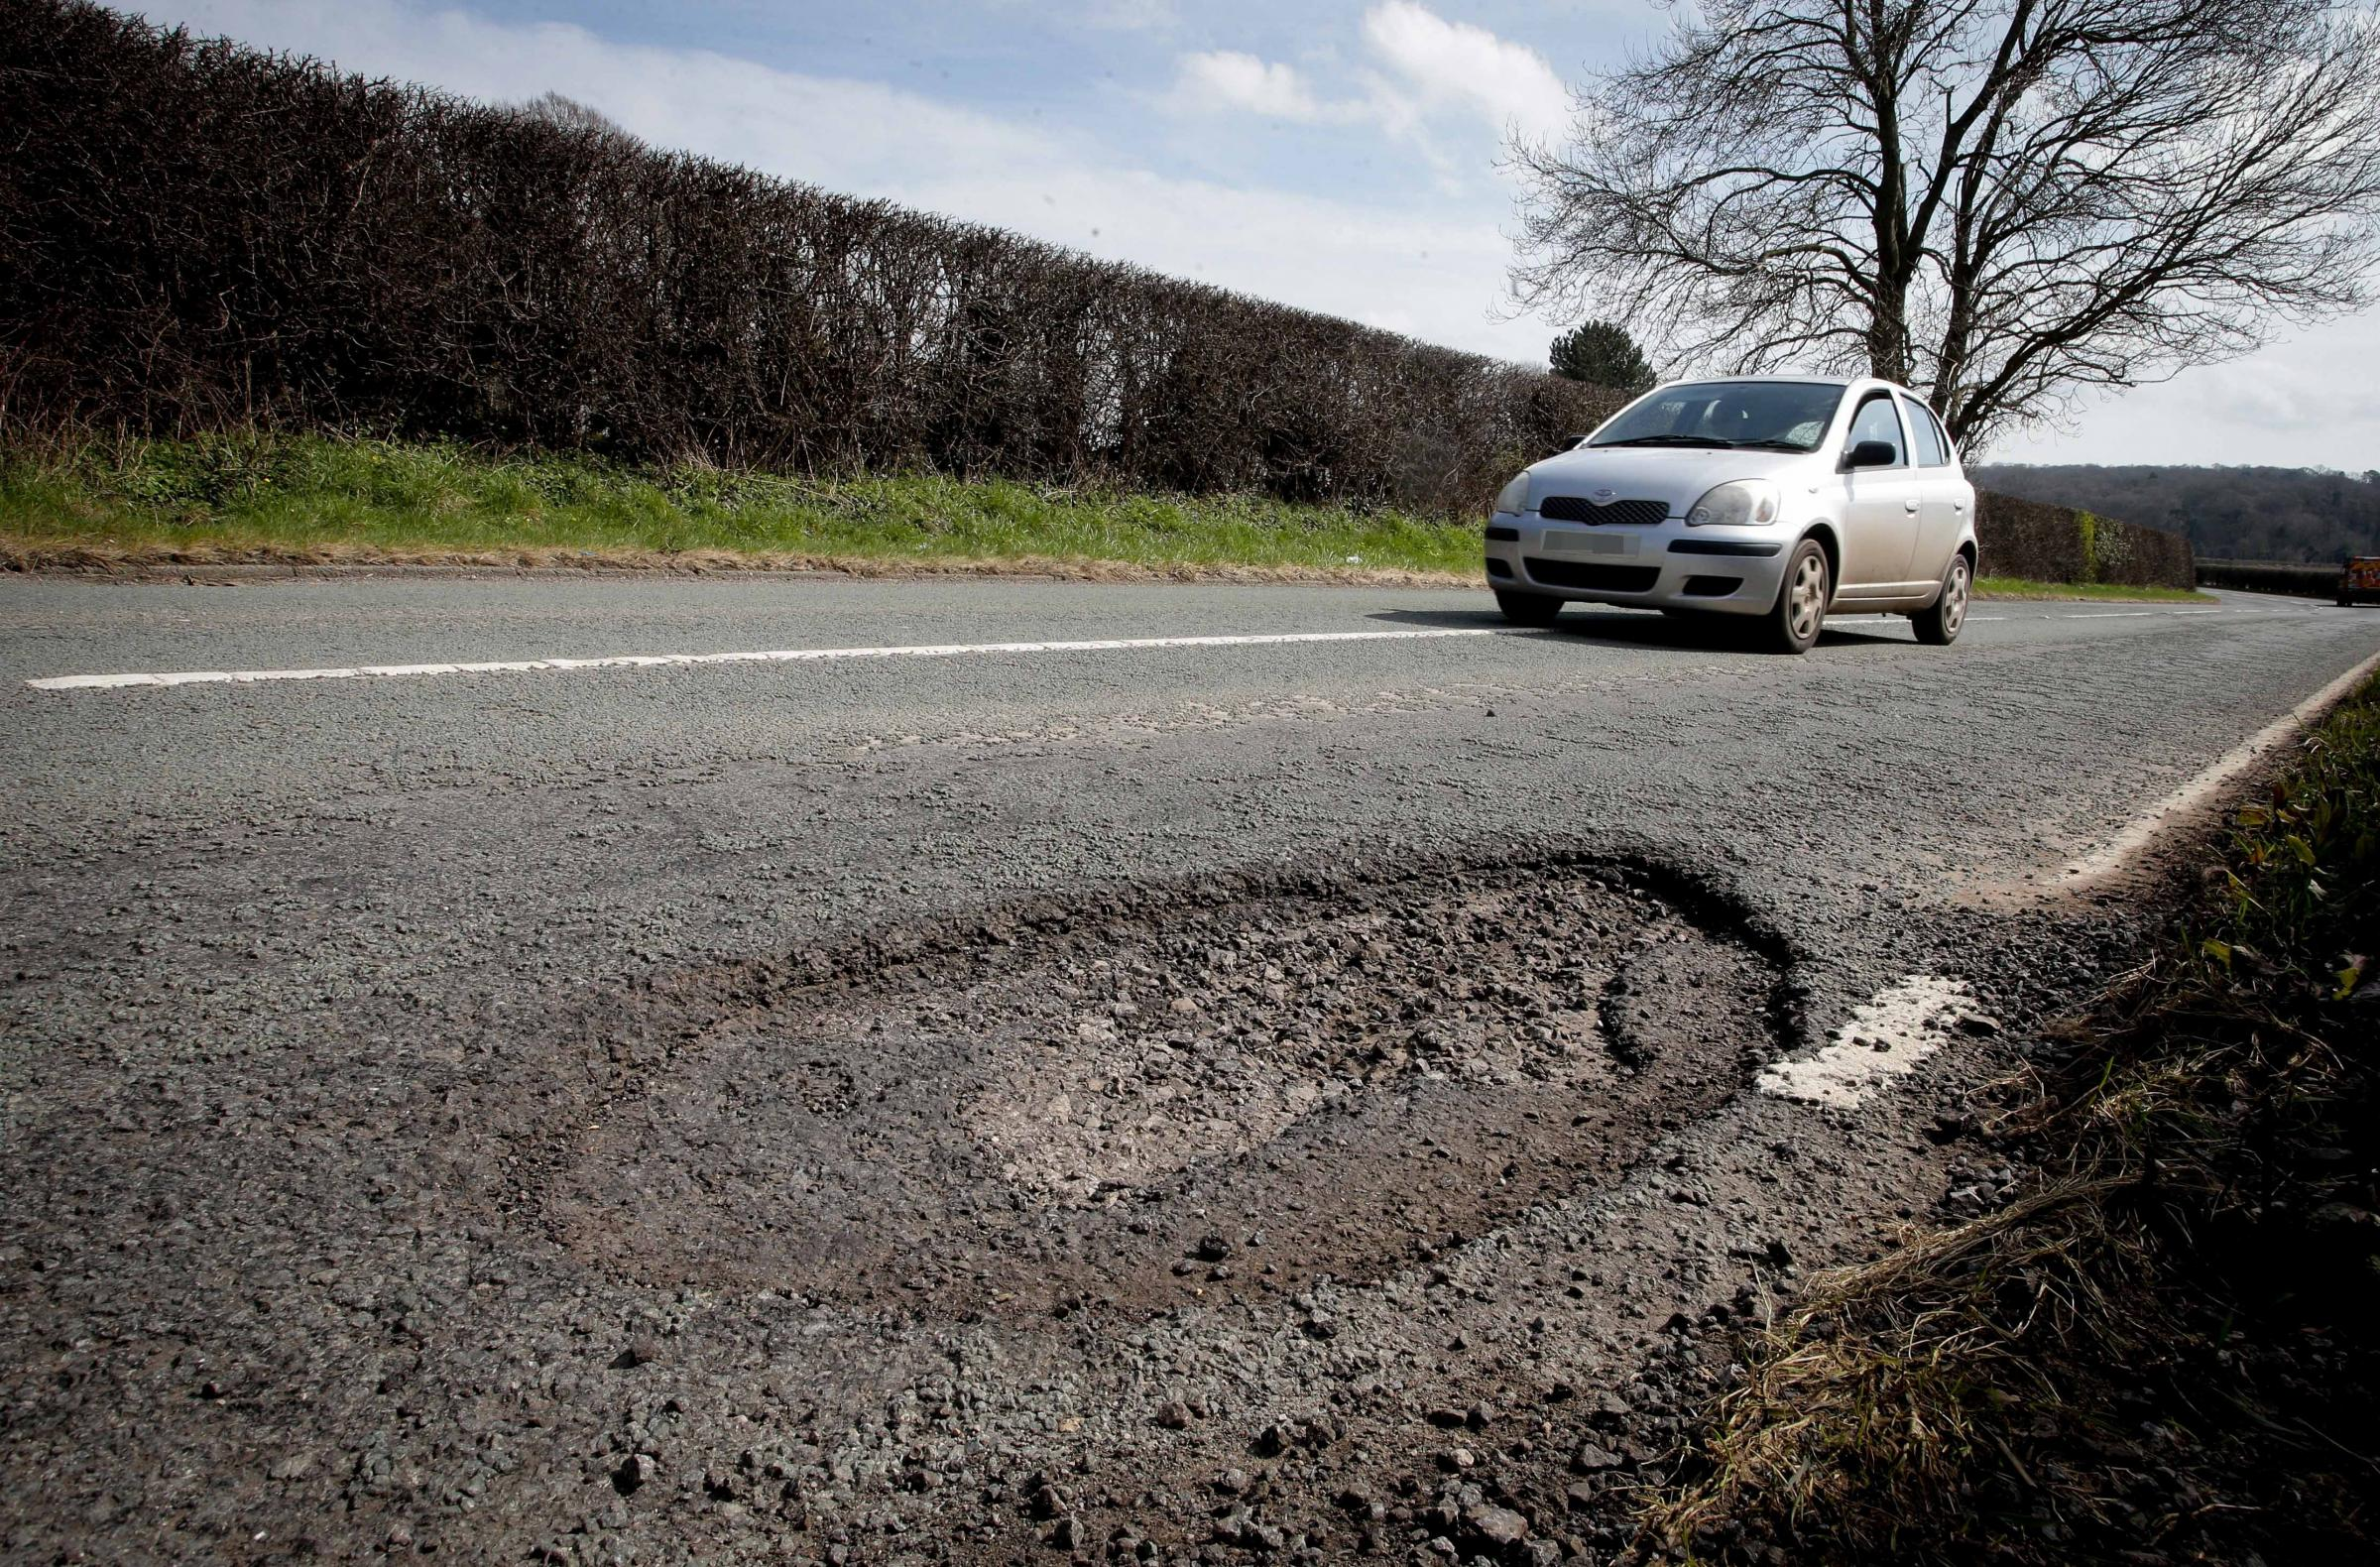 RM060418p.Mold.B5444 Wrexham Road.Pot hole - before and after.Flintshire County Council filling in the potholes.